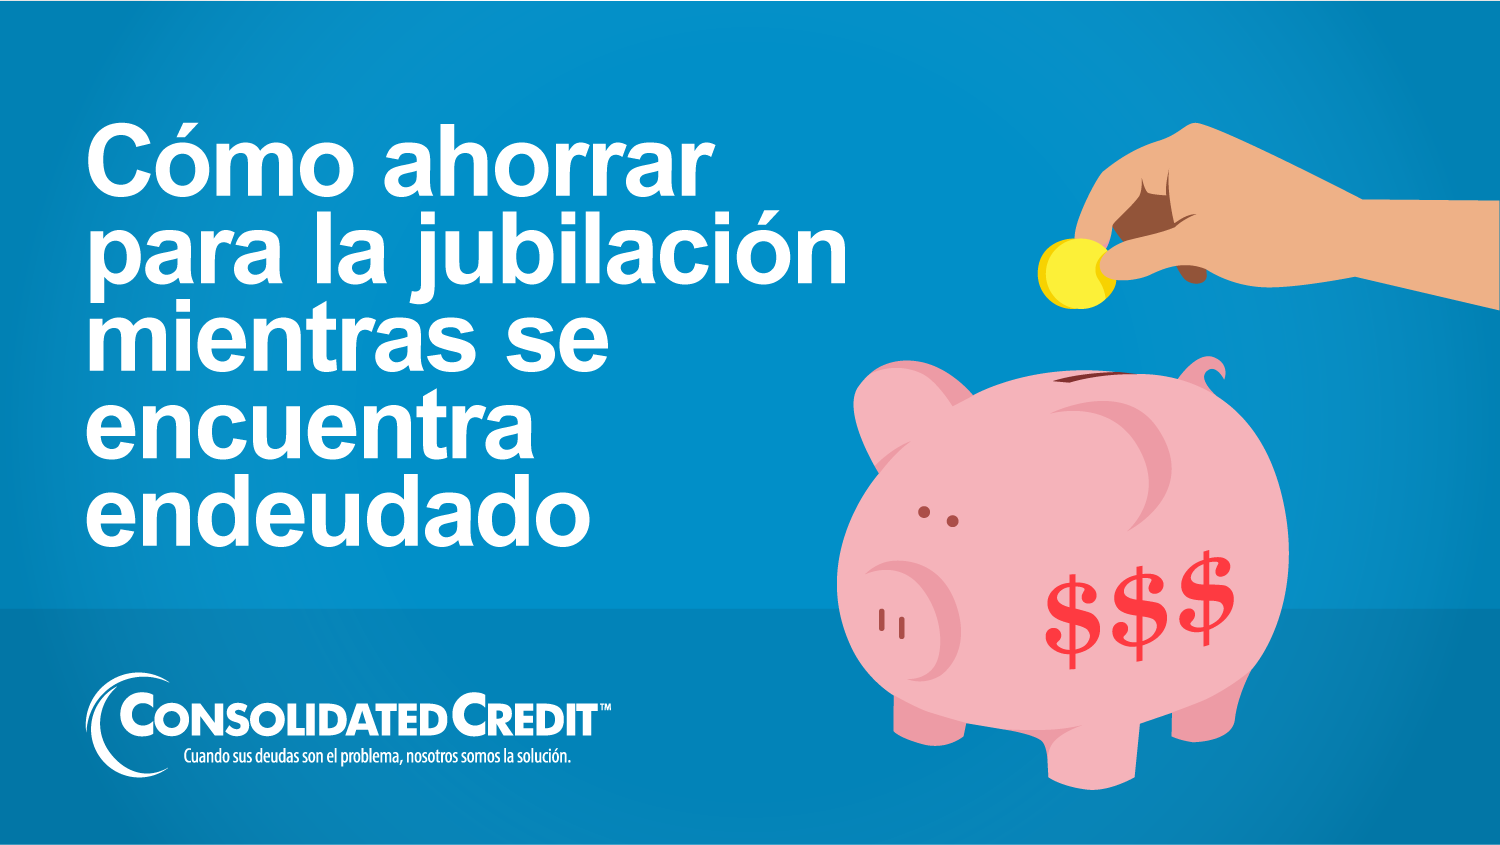 https://www.consolidatedcredit.org/es/wp-content/uploads/2020/08/TitleCard05_SP-IB.png